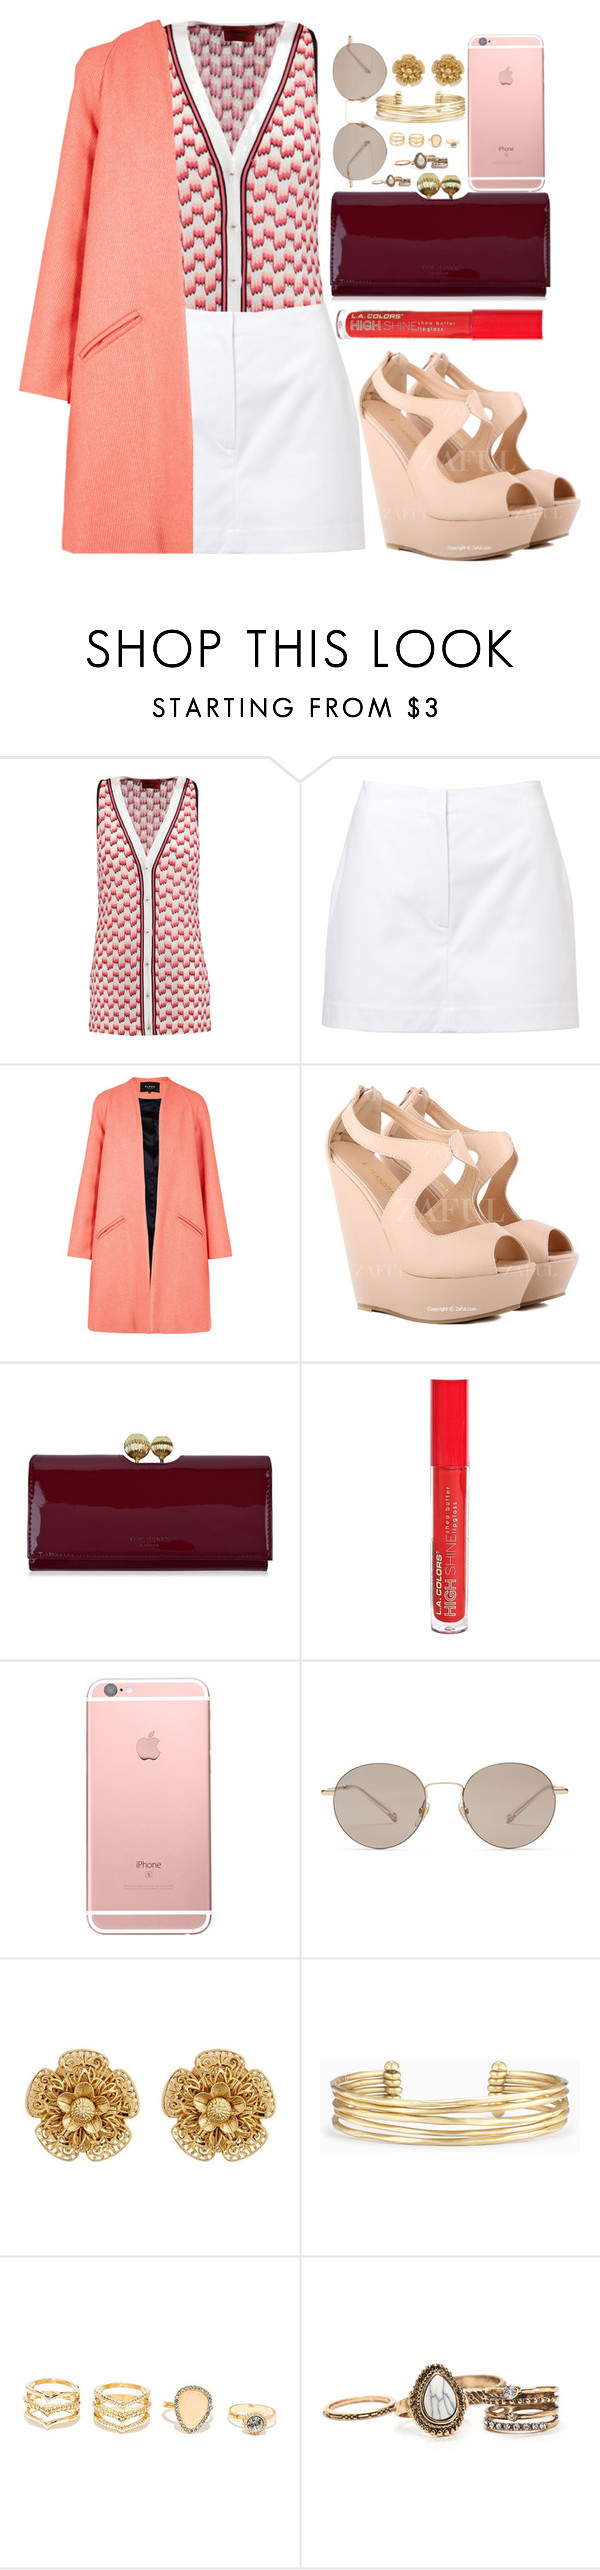 """""""."""" by fashionista-sweets ❤ liked on Polyvore featuring Missoni, Alaïa, Paper London, Ted Baker, L.A. Colors, Gucci, Miriam Haskell, Stella & Dot and LULUS"""